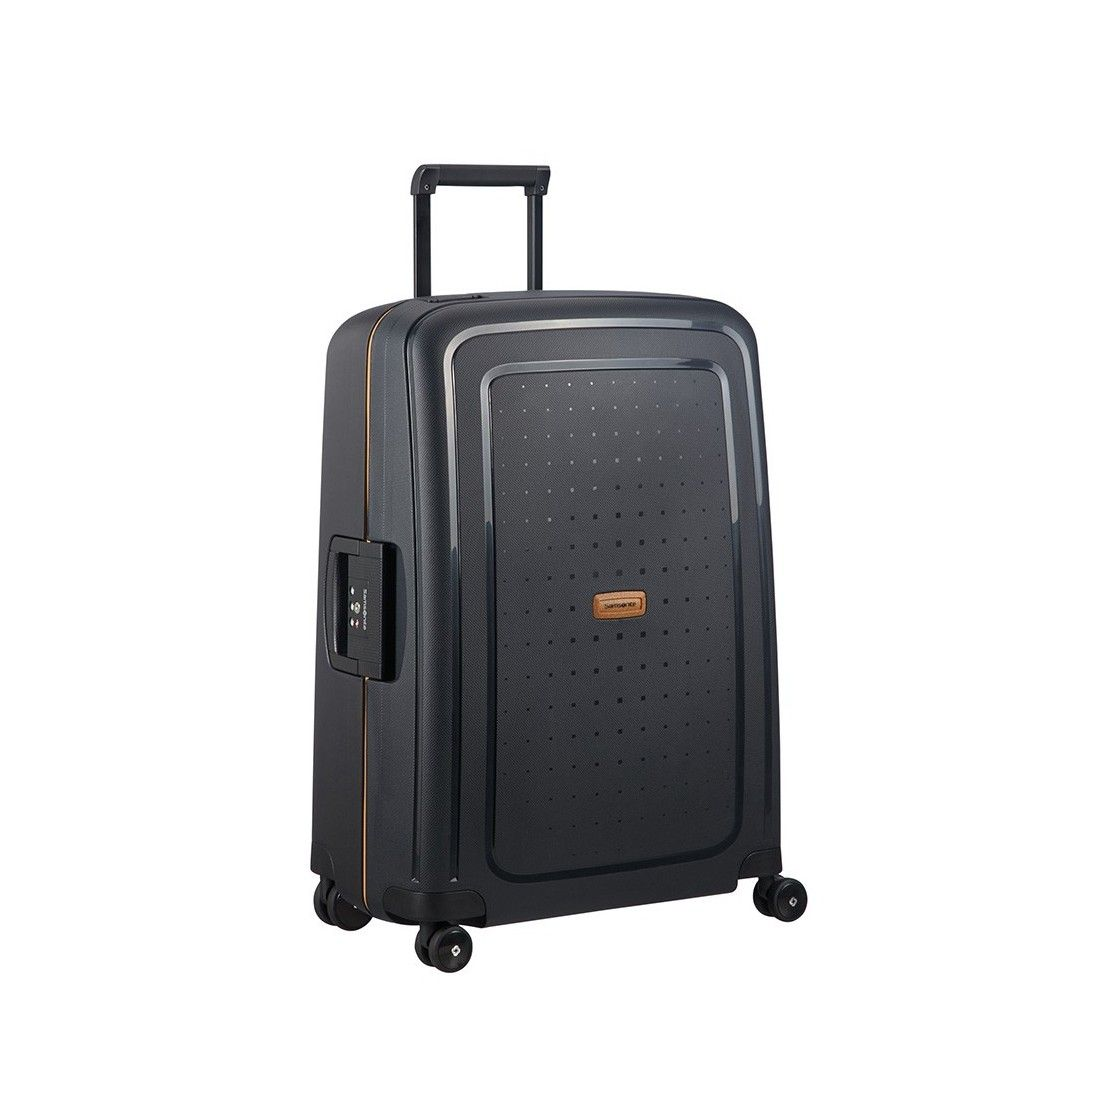 Samsonite S Cure Eco | Maleta negra